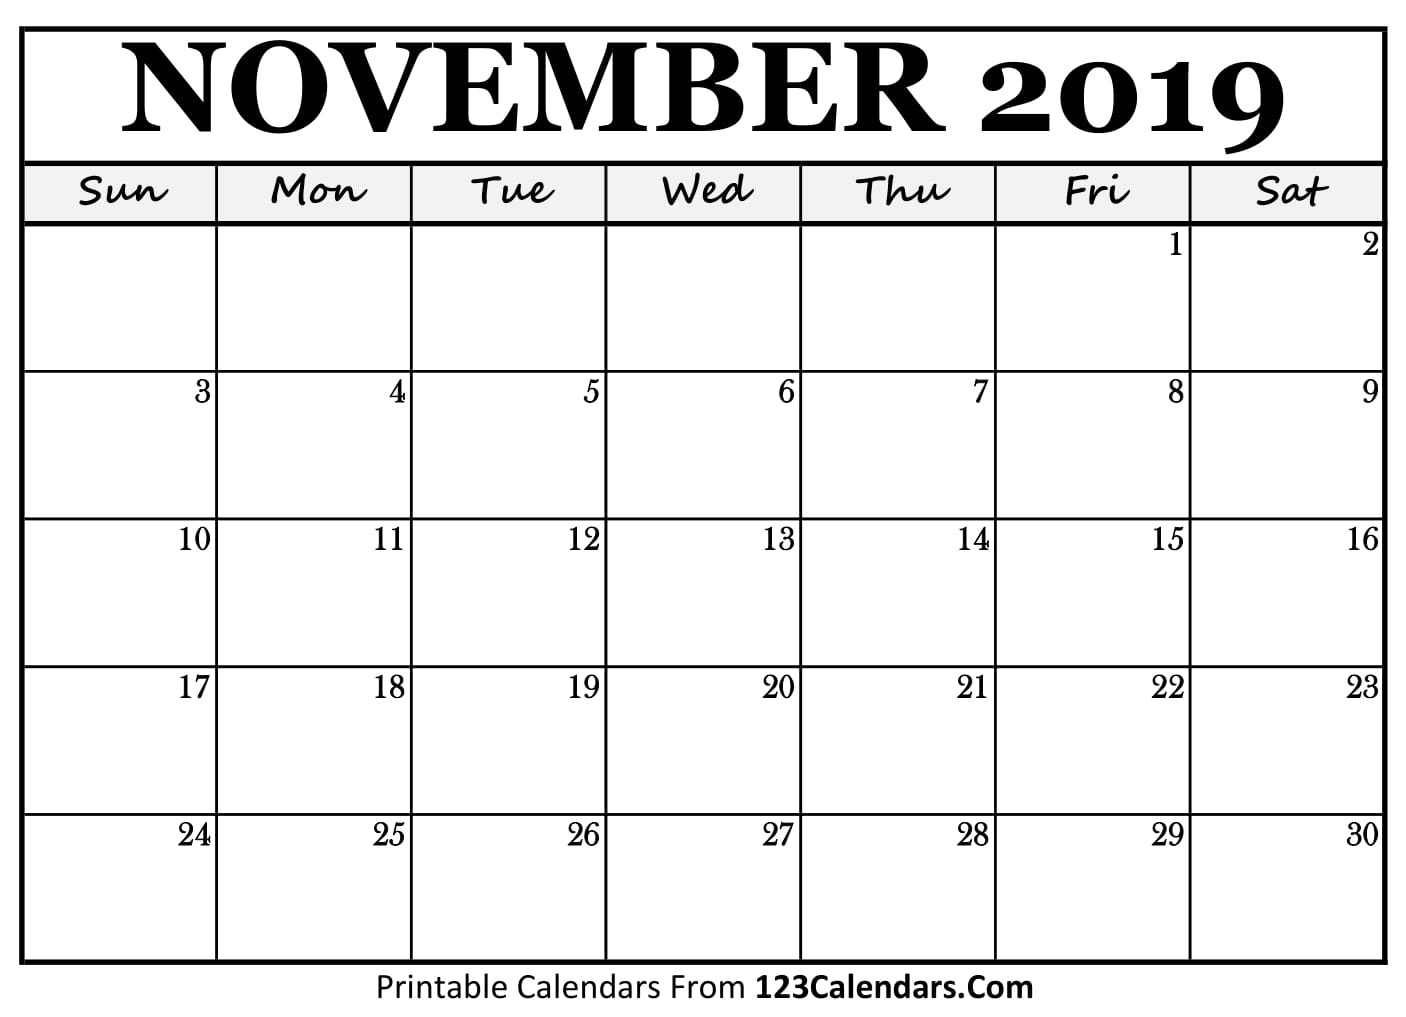 2018 November Calendar Template Holidays November 2018 Calendar Printable